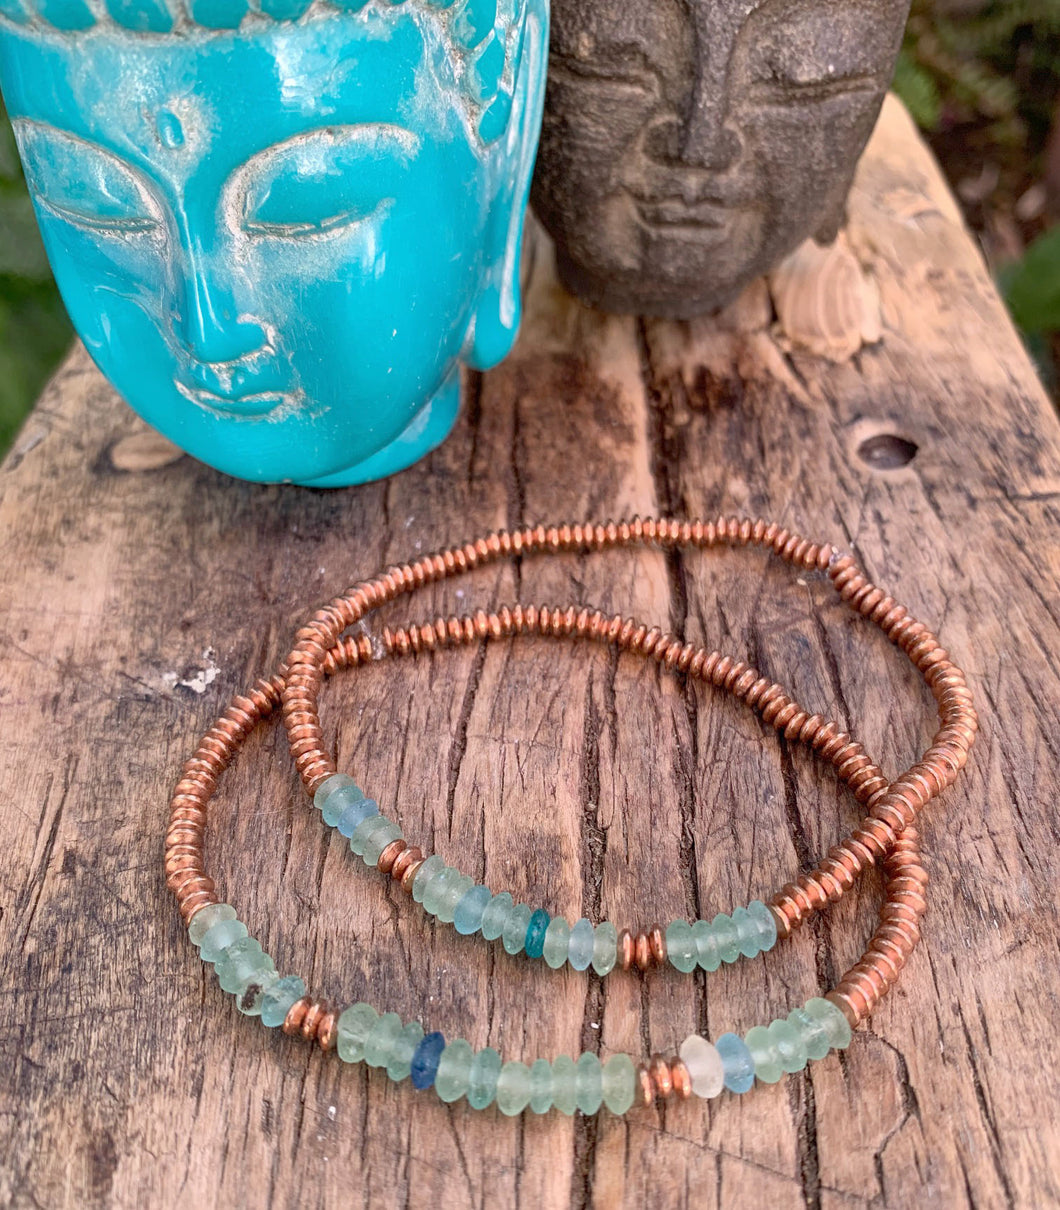 OCEAN SOUL - MEN'S ROMAN GLASS & COPPER BRACELET